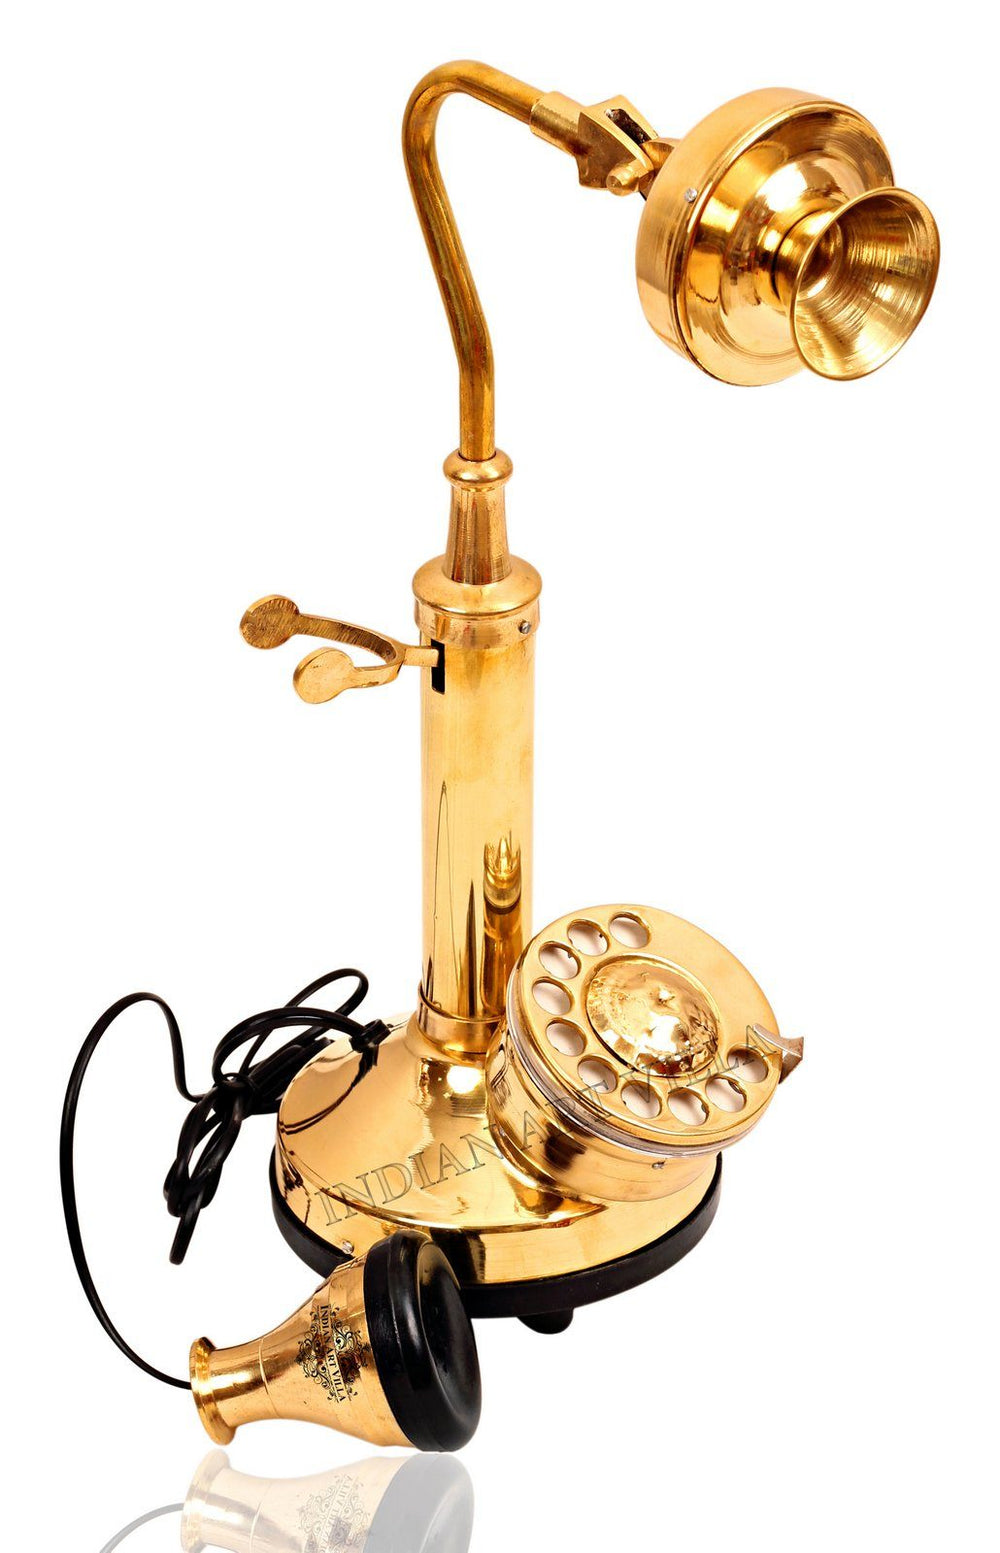 Brass Golden Candle Stick Phone - Long neck Design Home Accent HR-1